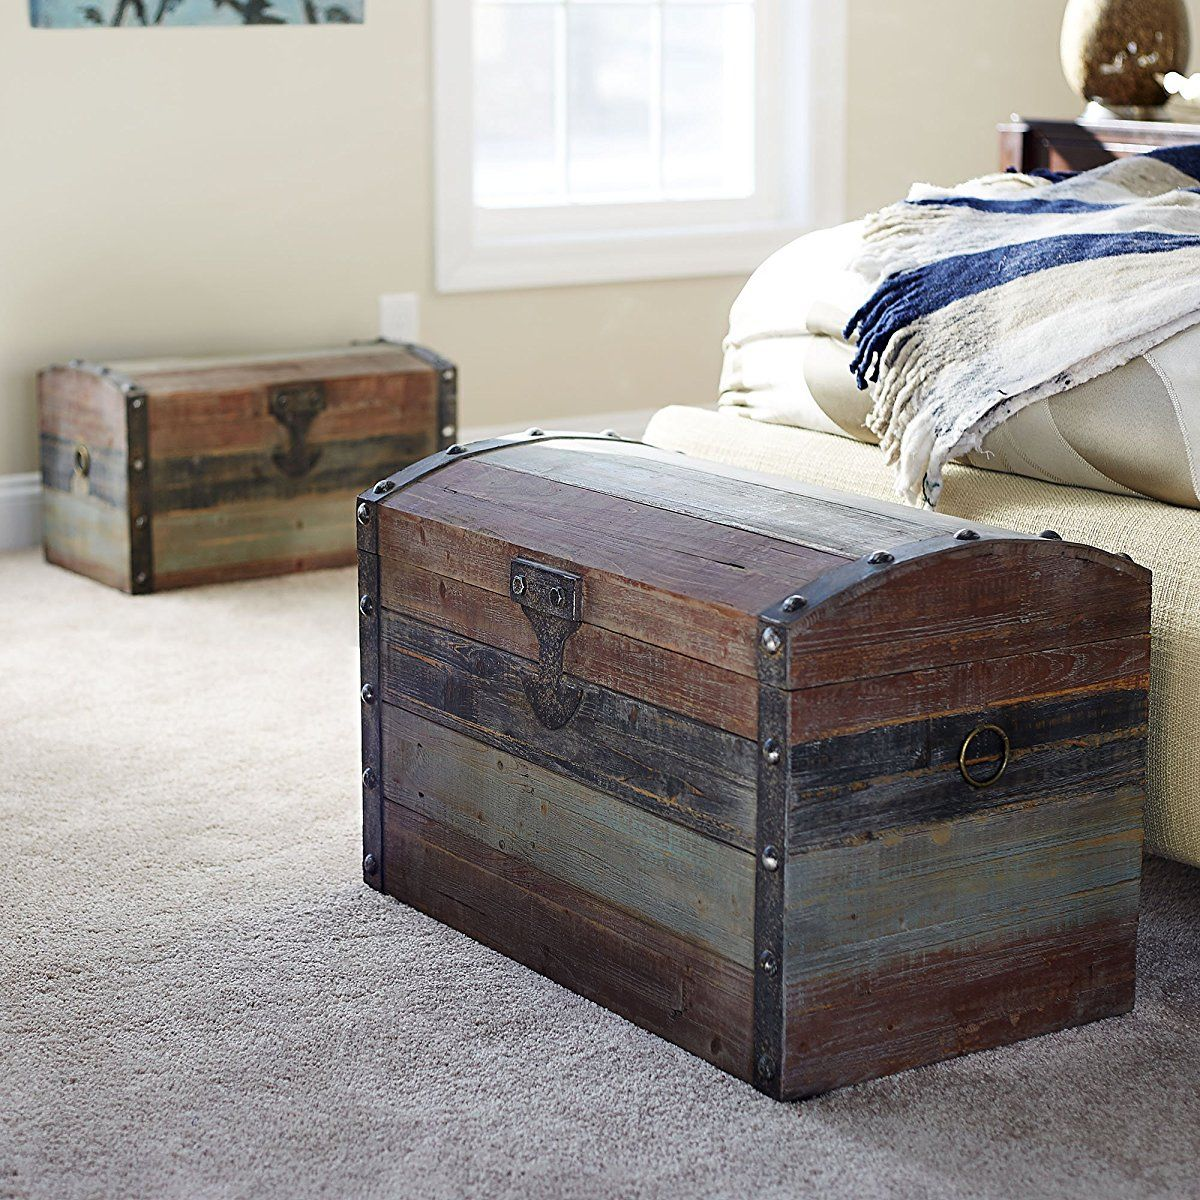 Vintage Wooden Storage Trunk